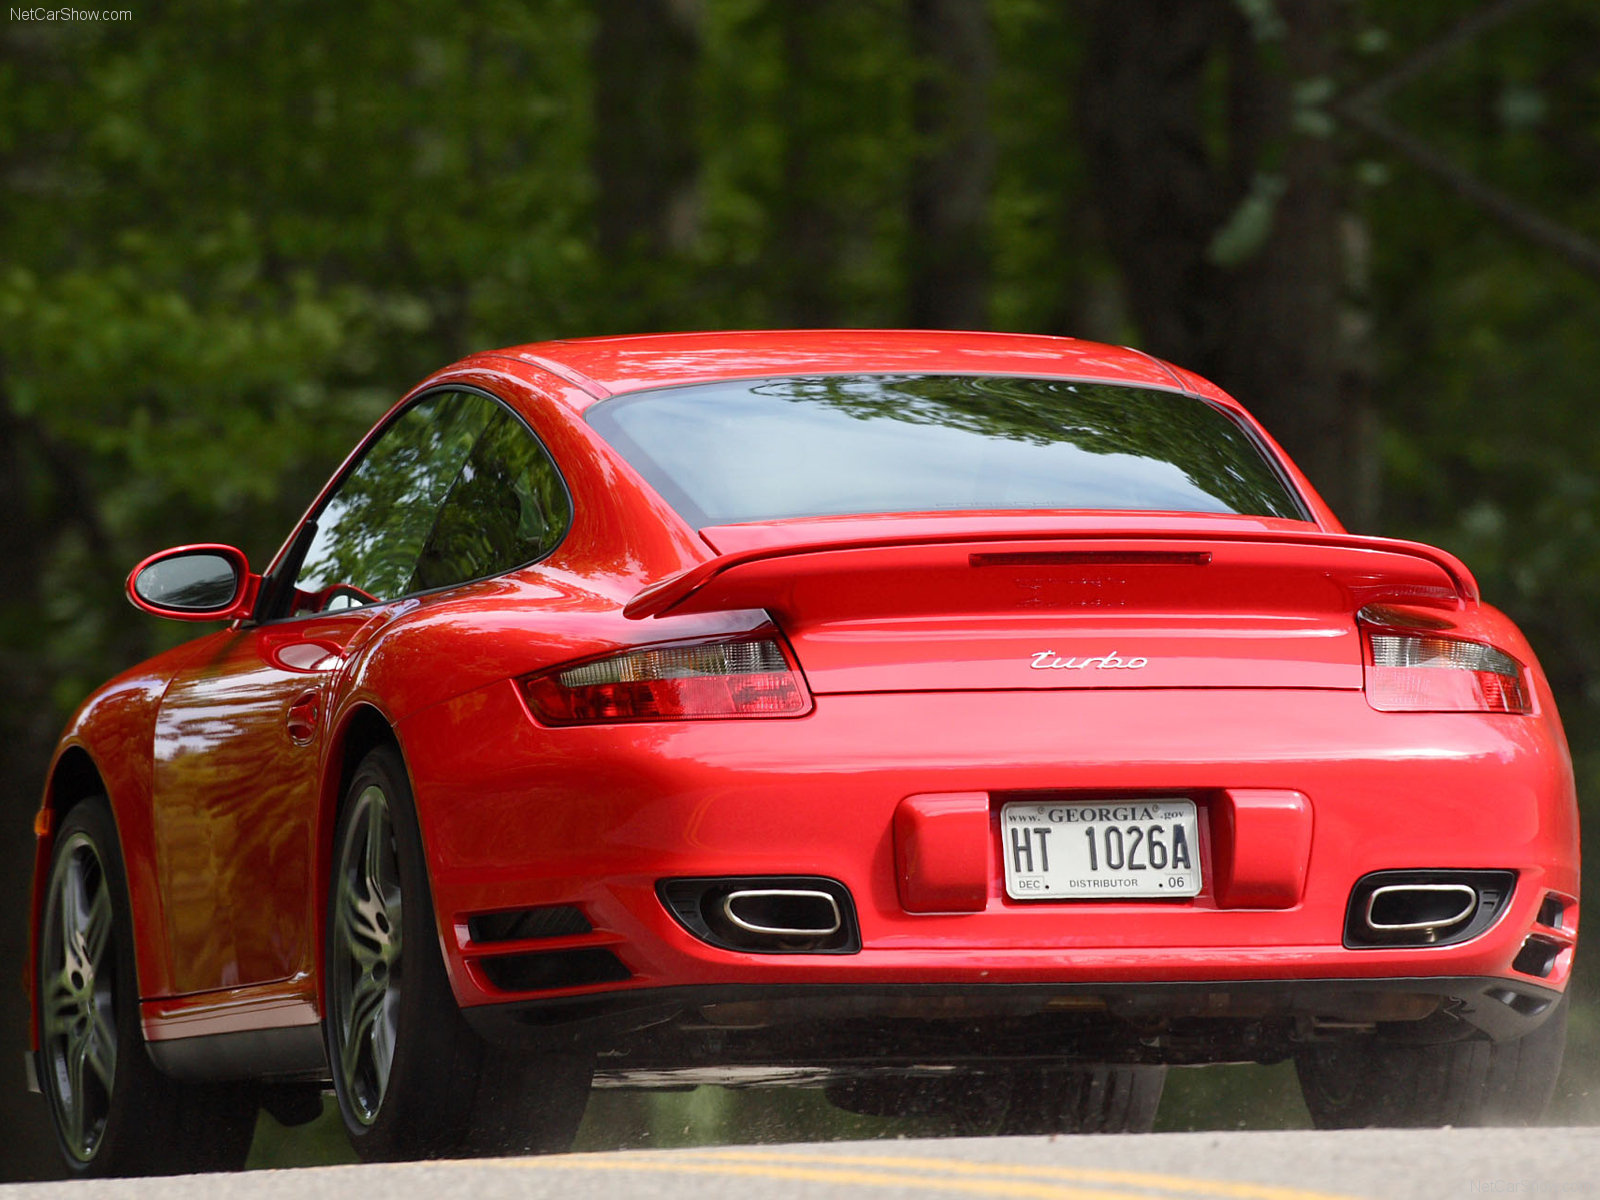 Used Car Parts For Sale >> 2007 Red Porsche 911 Turbo wallpapers